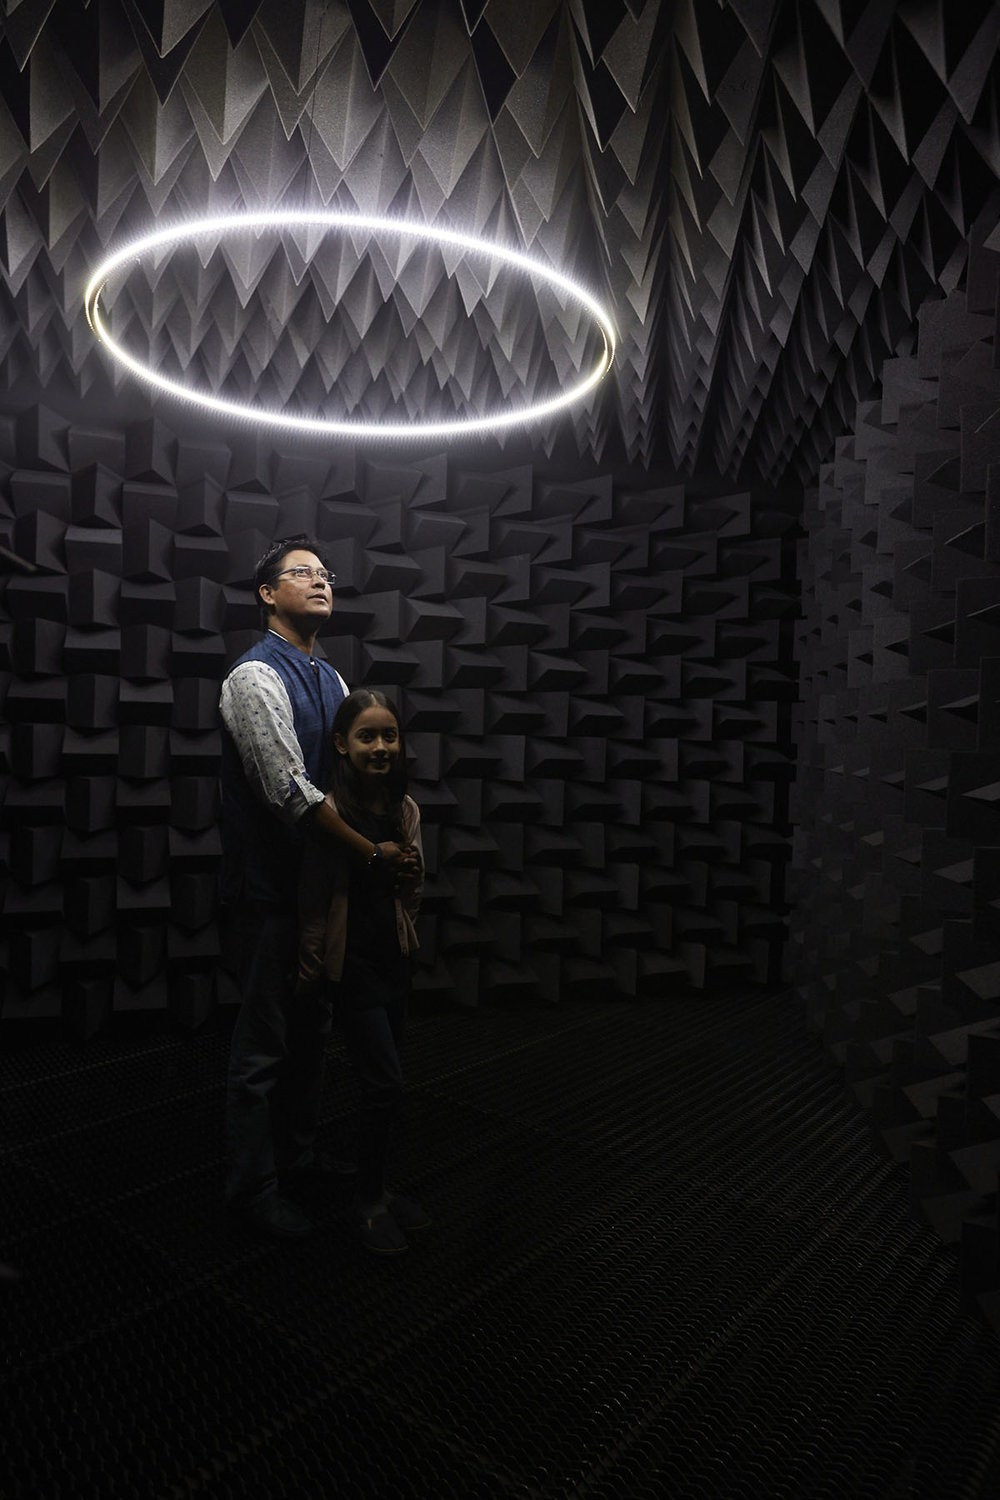 Haroon Mirza, installation view of The National Apavilion of Then and Now, 2011, courtesy of the artist and Lisson Gallery, London. Photo courtesy of the Dhaka Art Summit and Samdani Art Foundation. Photo credit: Jenni Carter